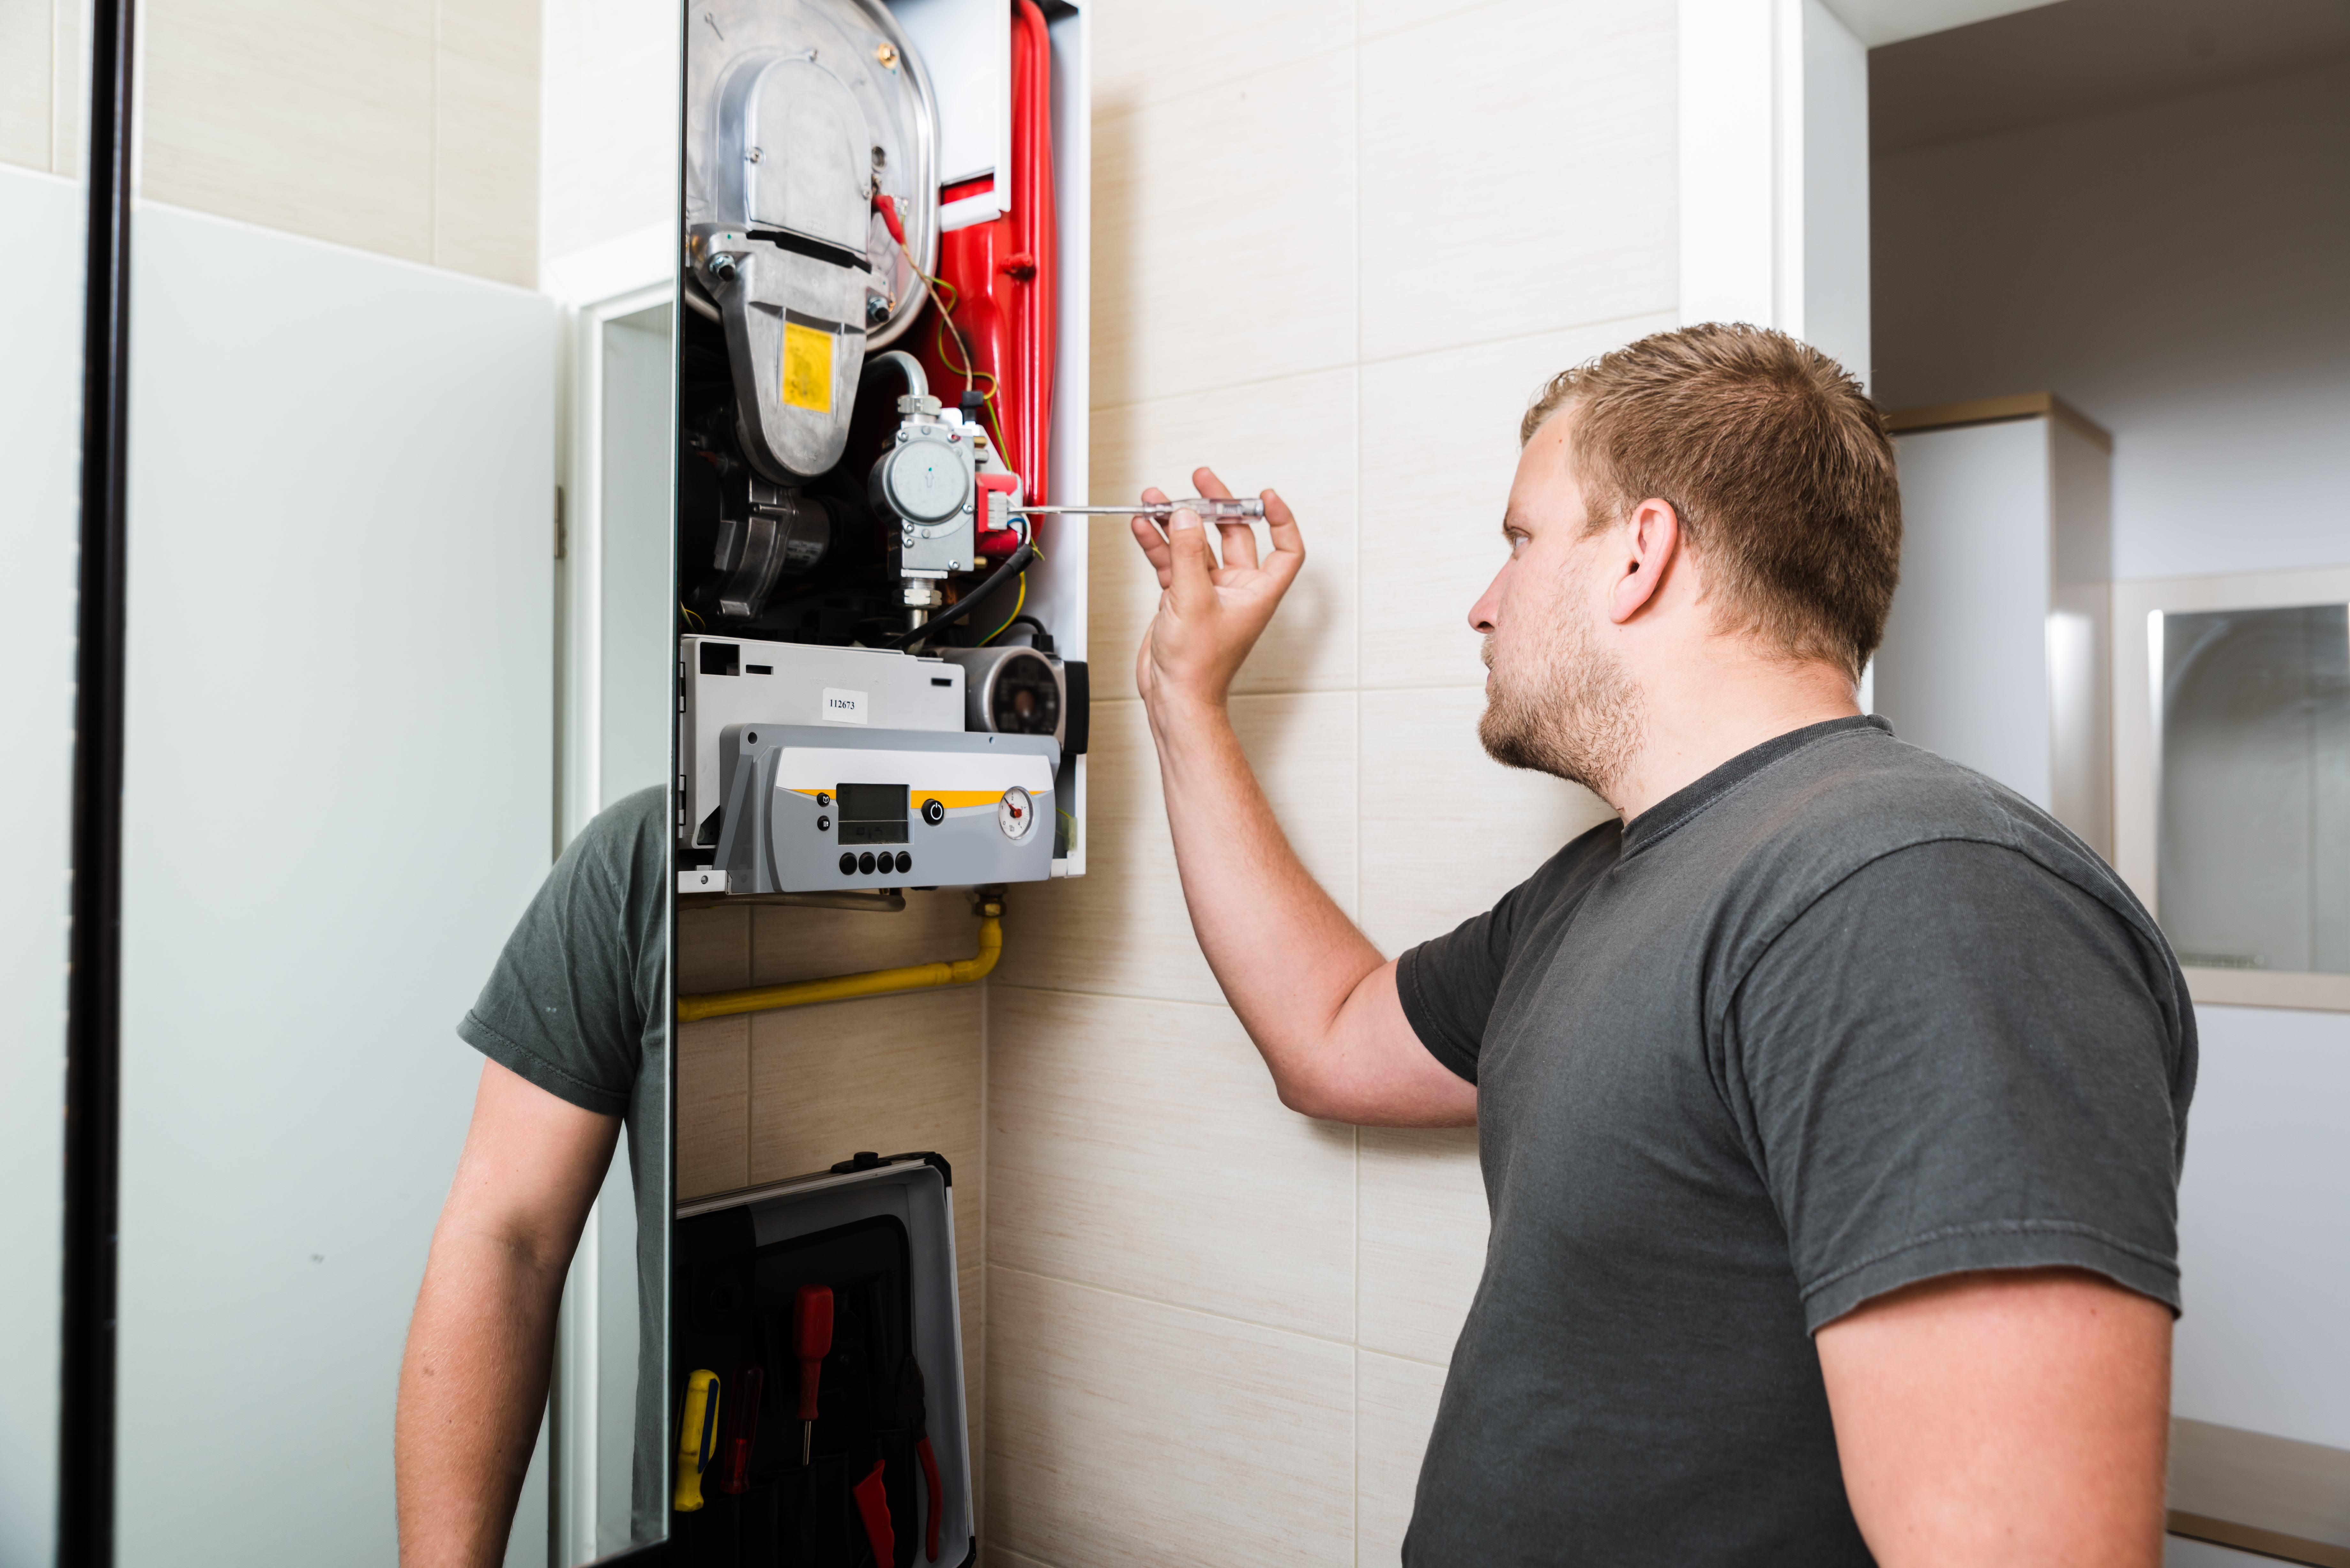 How To Adjust The Temp On A Rheem Water Heater Home Guides